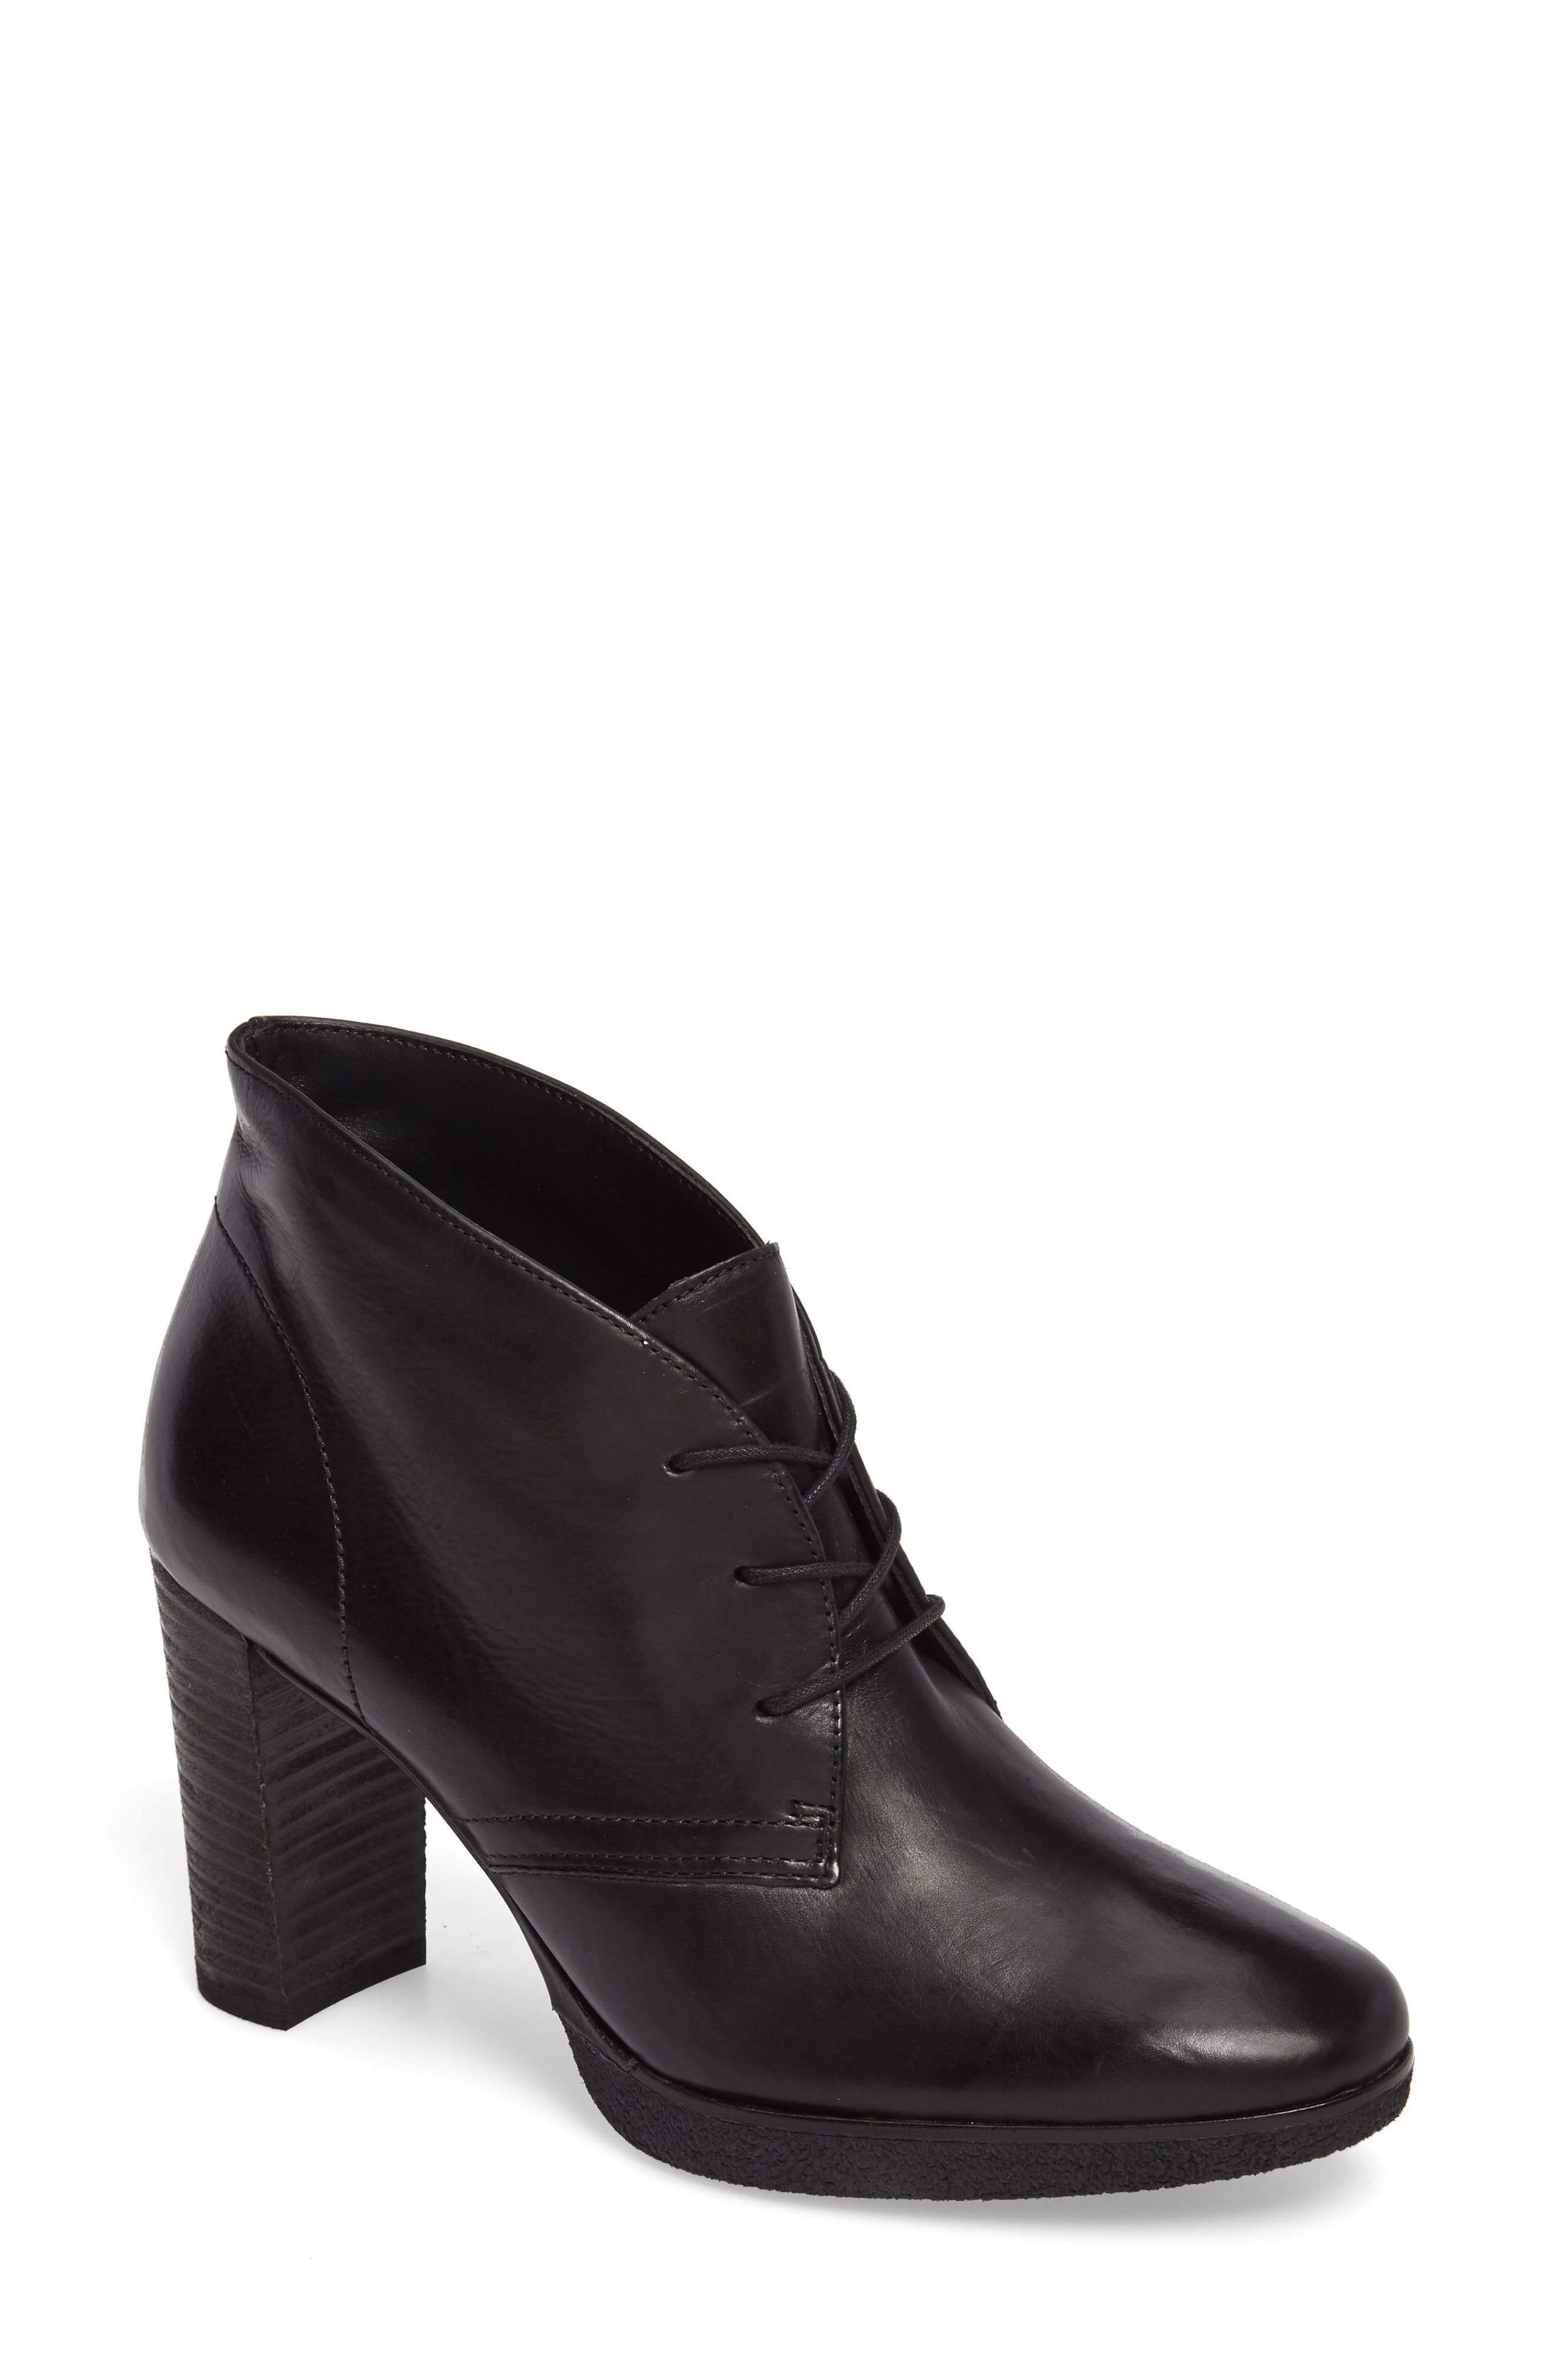 Ophelia Lace-Up Bootie,                         Main,                         color, 001